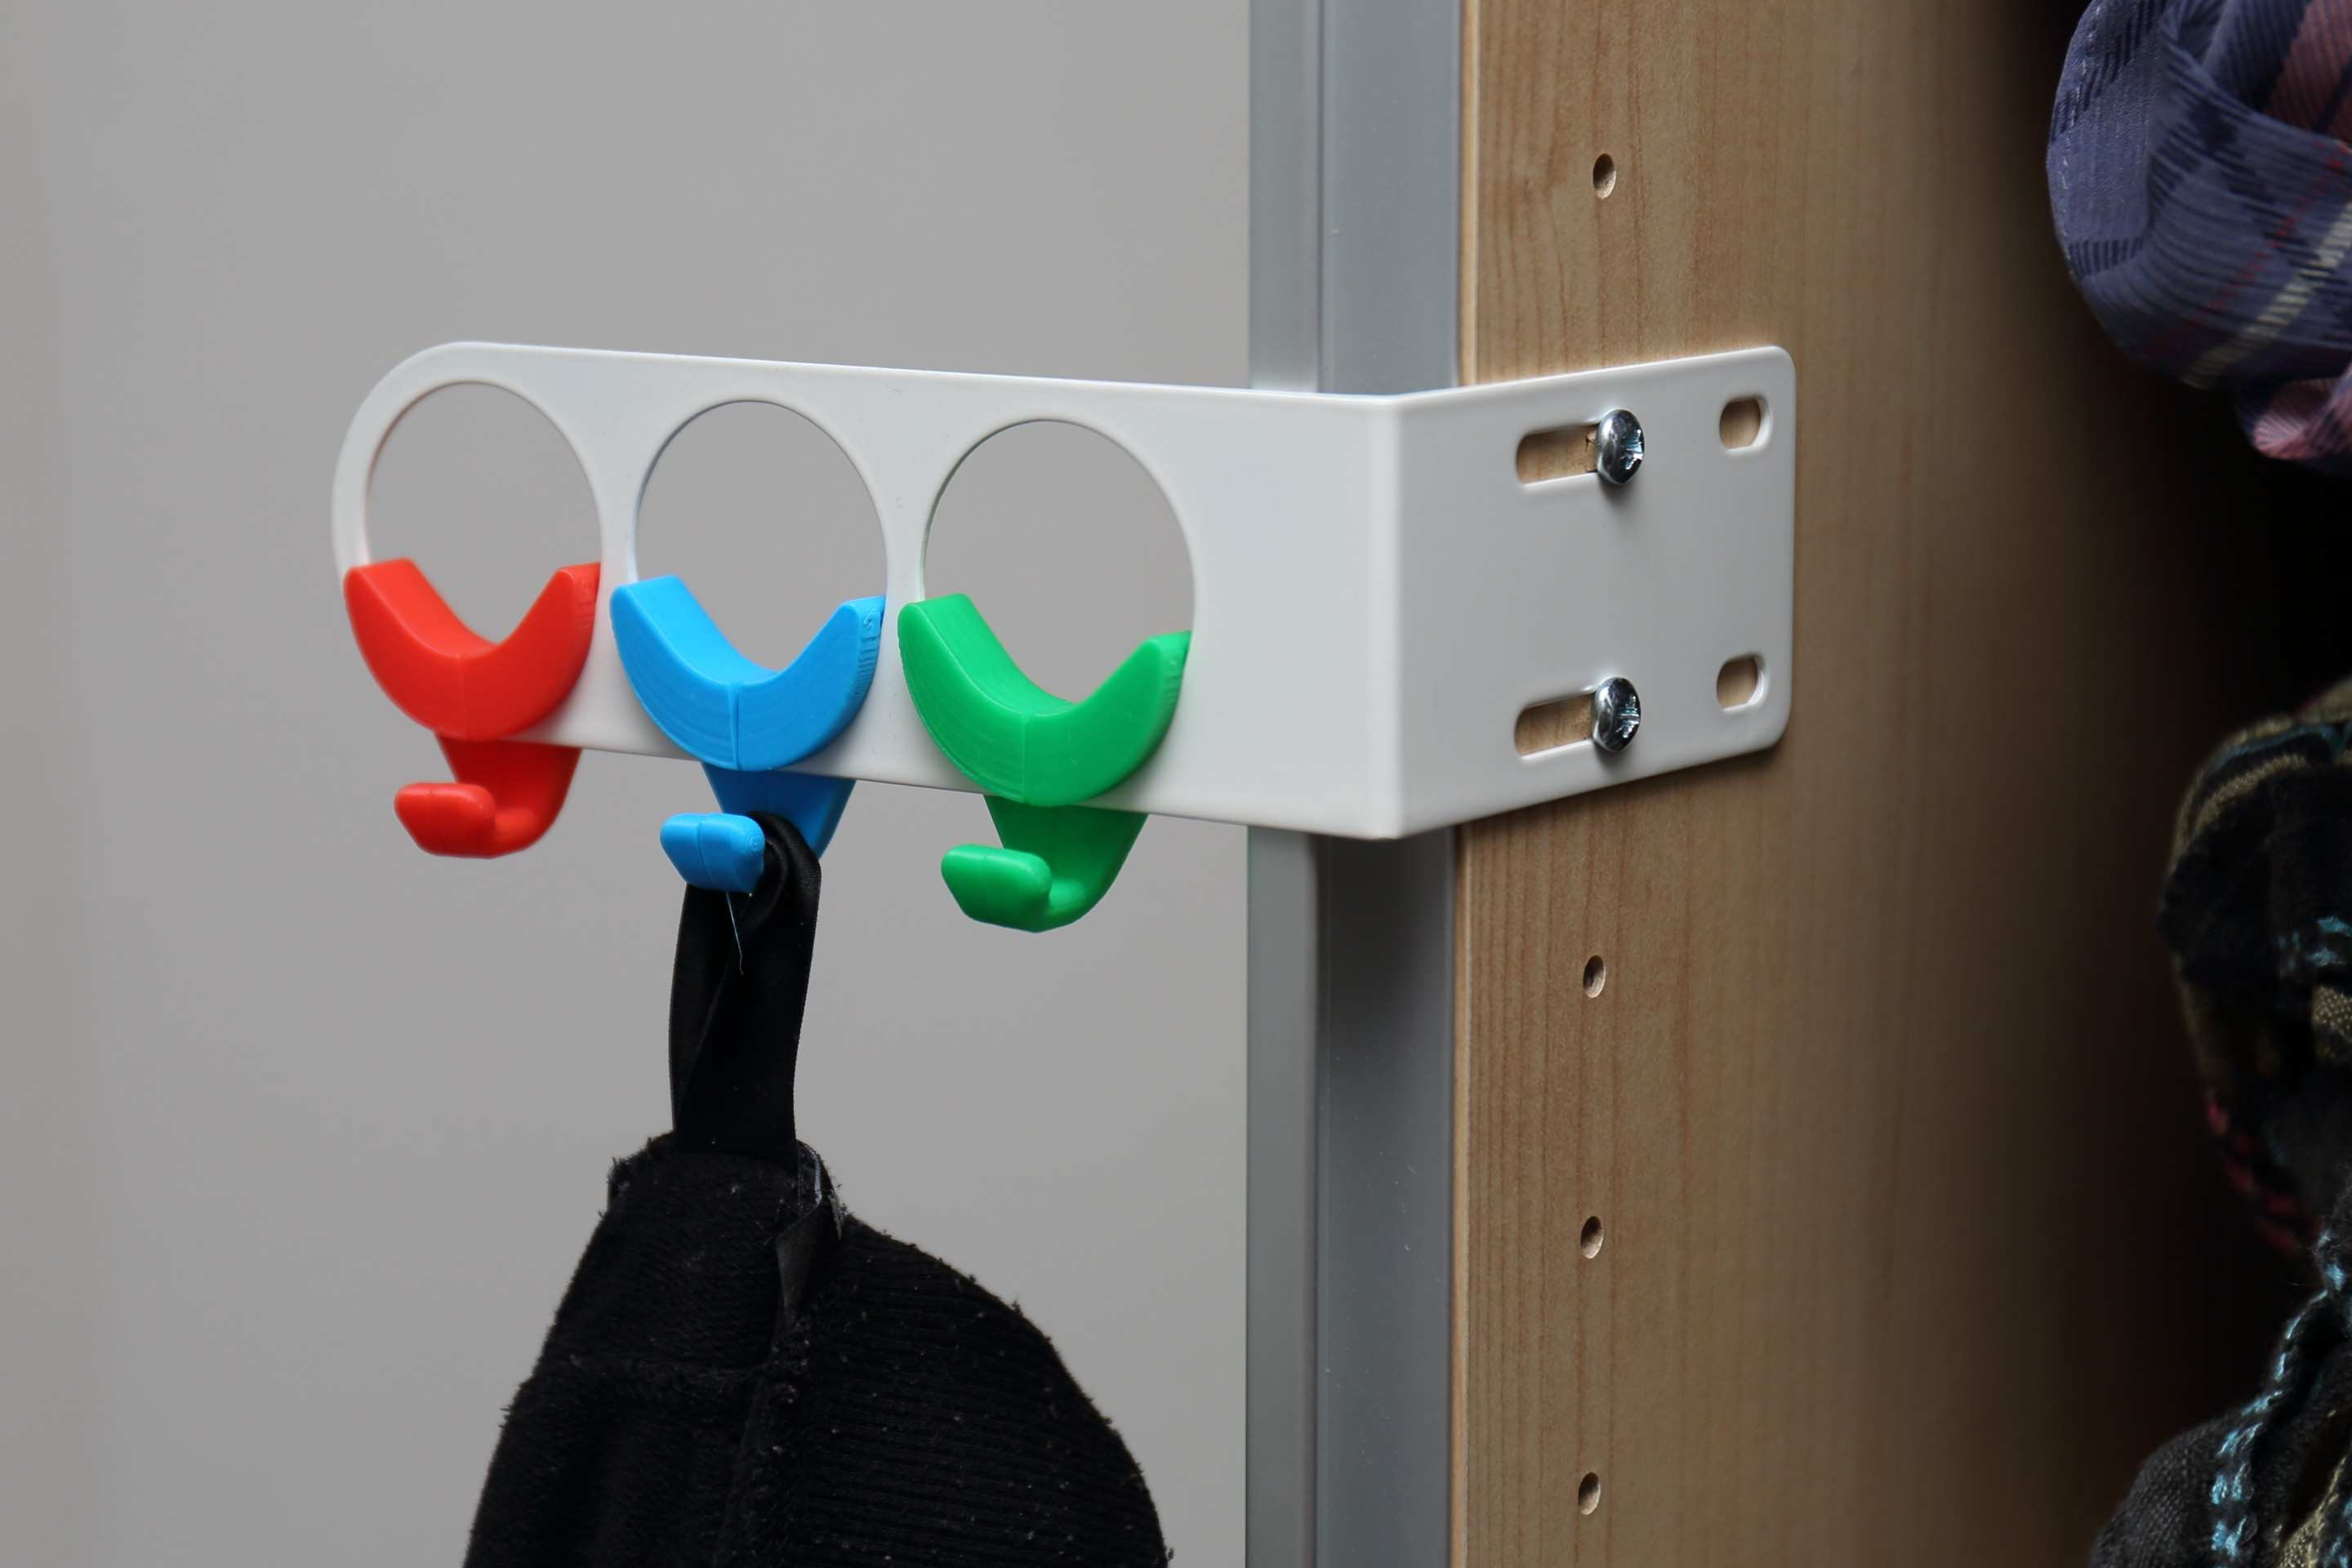 Hooks for IKEA Komplement Valet Hanger by iscand Thingiverse